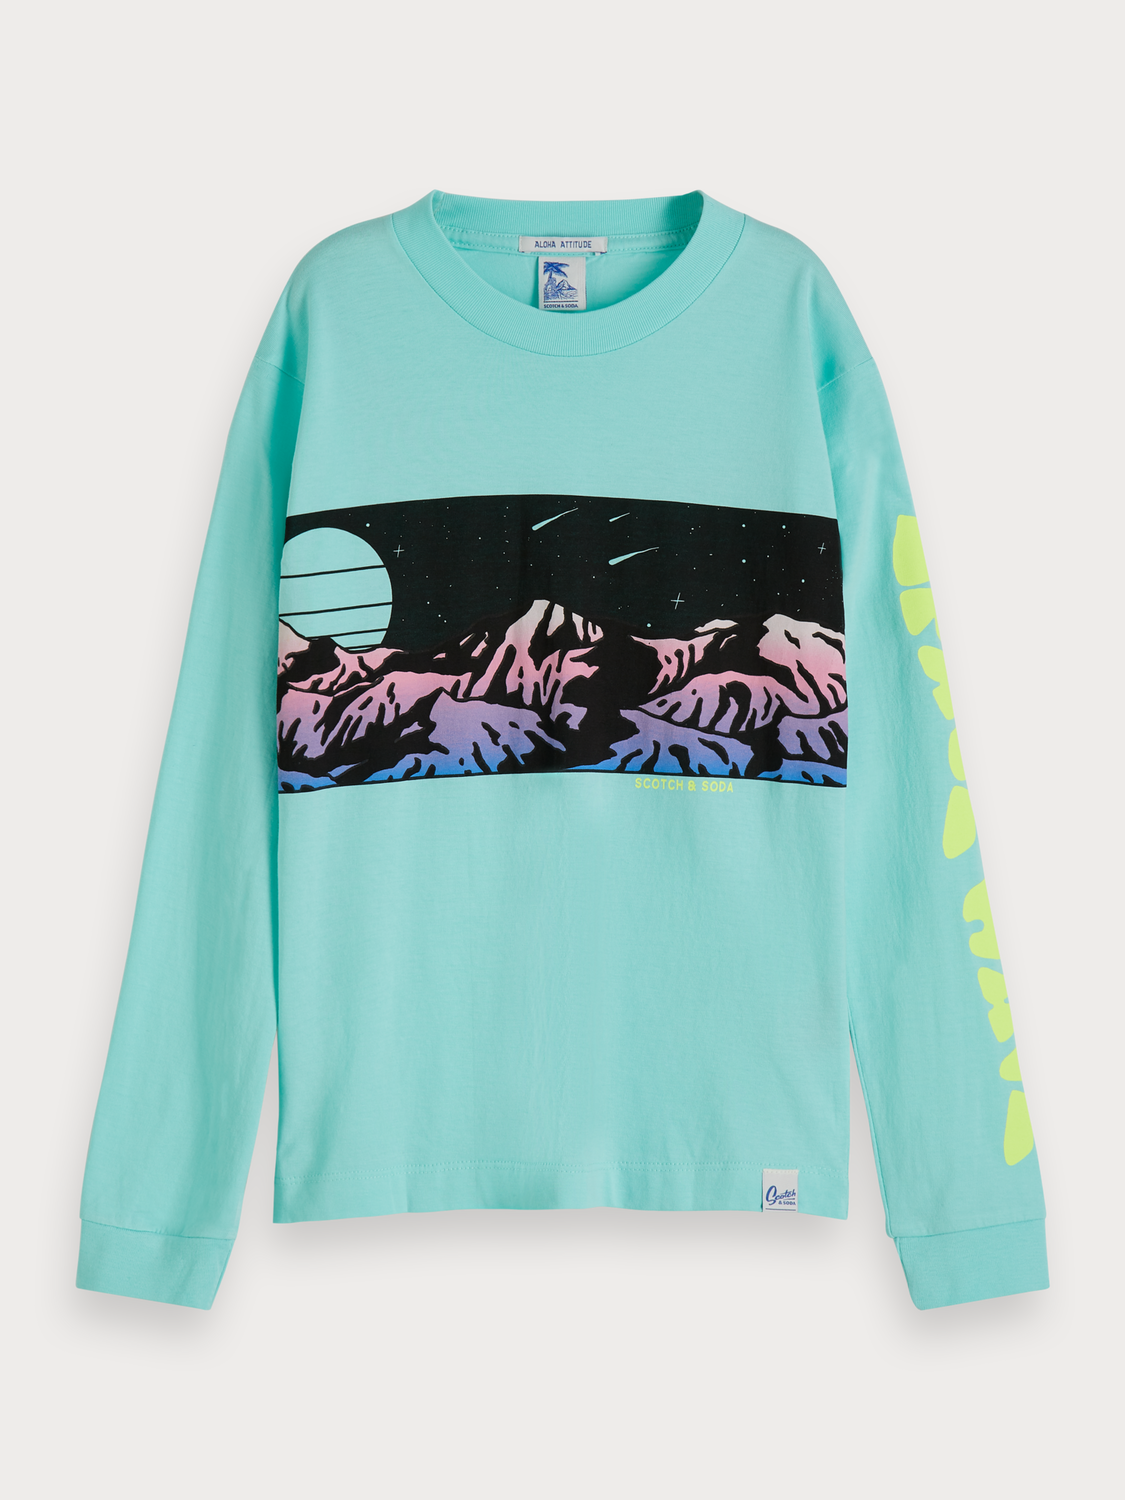 Boys Long Sleeved Artwork T-Shirt